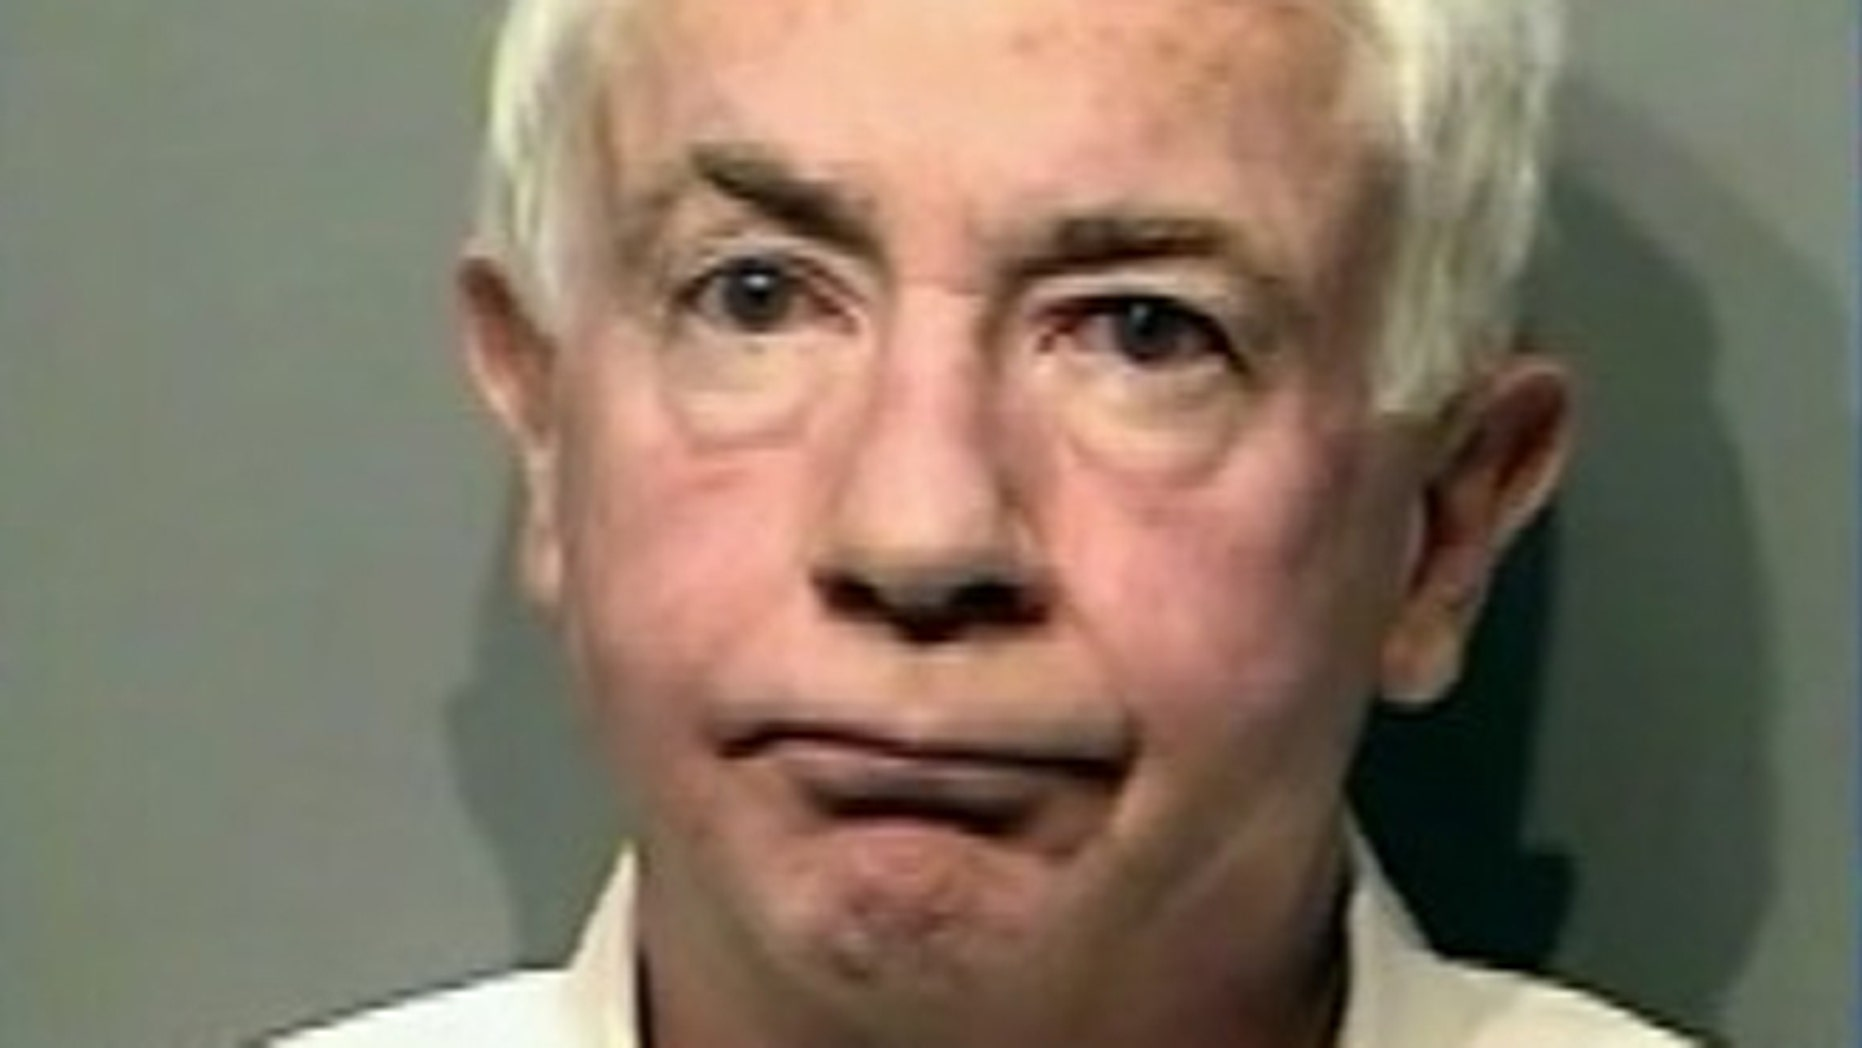 Joe Ricky Hundley, 60, is accused of slapping a 2-year-old boy during a flight from Minneapolis to Atlanta.